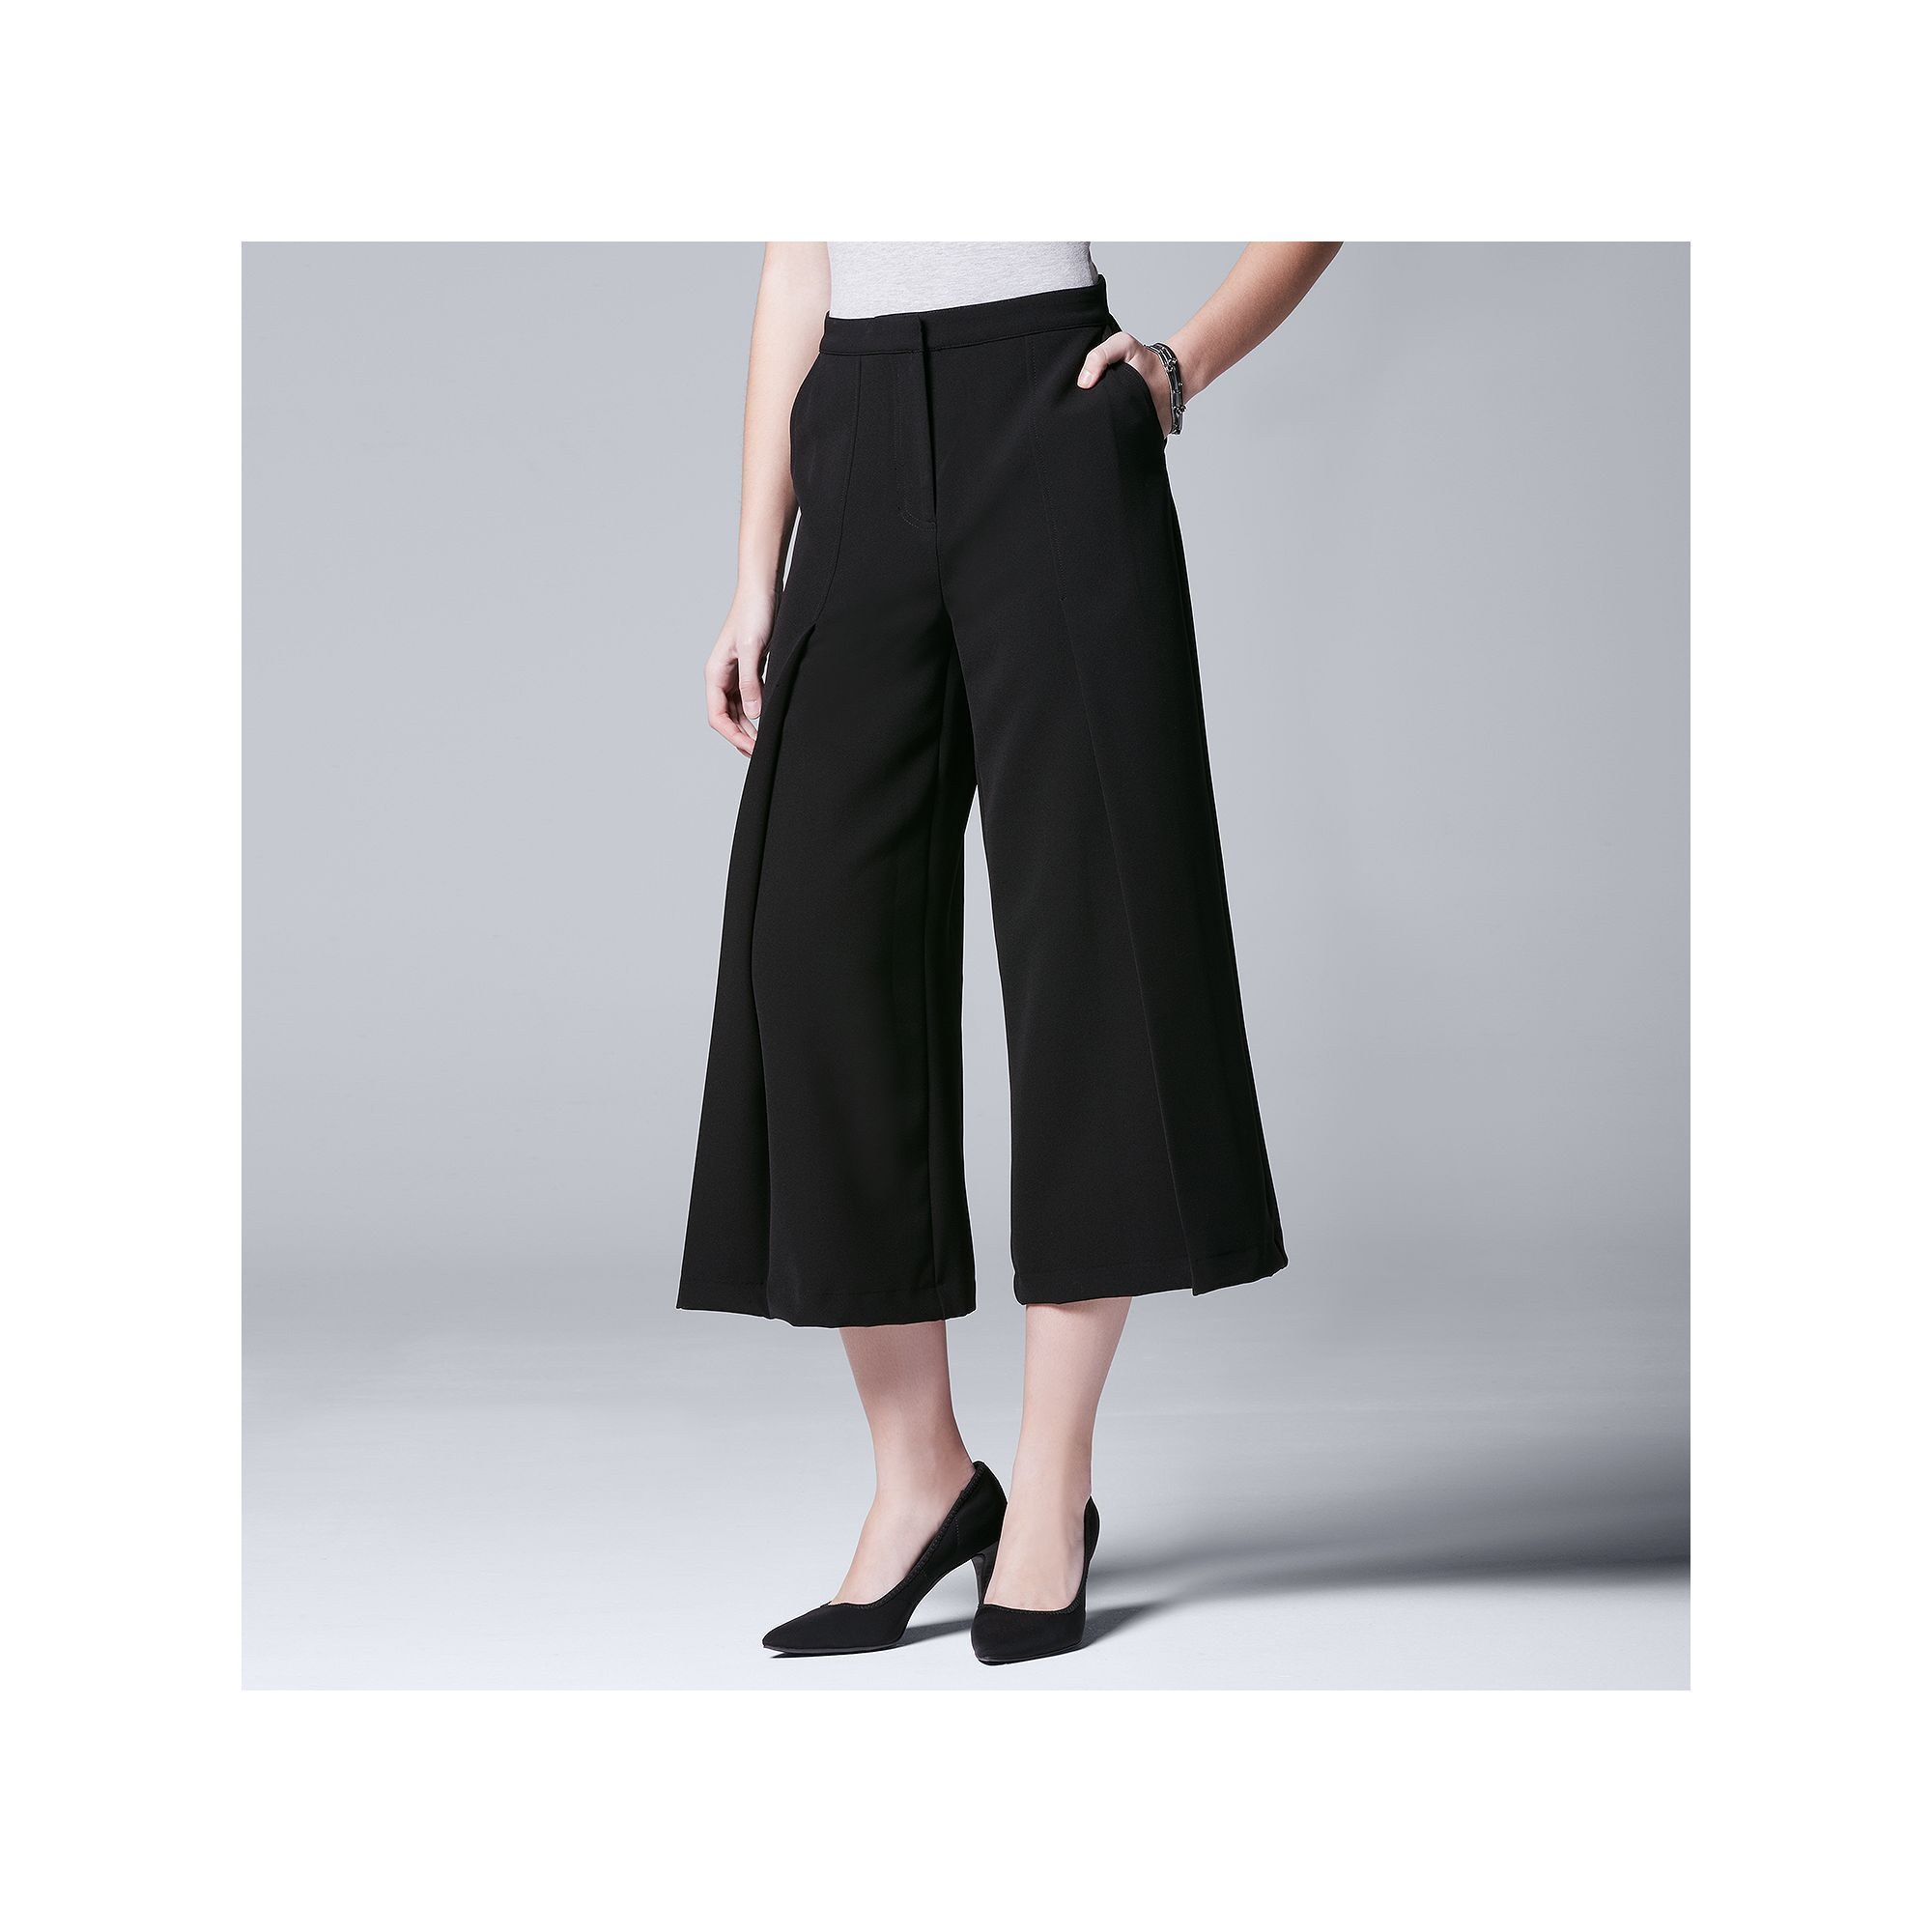 bfdcff4011730 Women's Simply Vera Vera Wang Pleated Culottes   Products   Simply ...